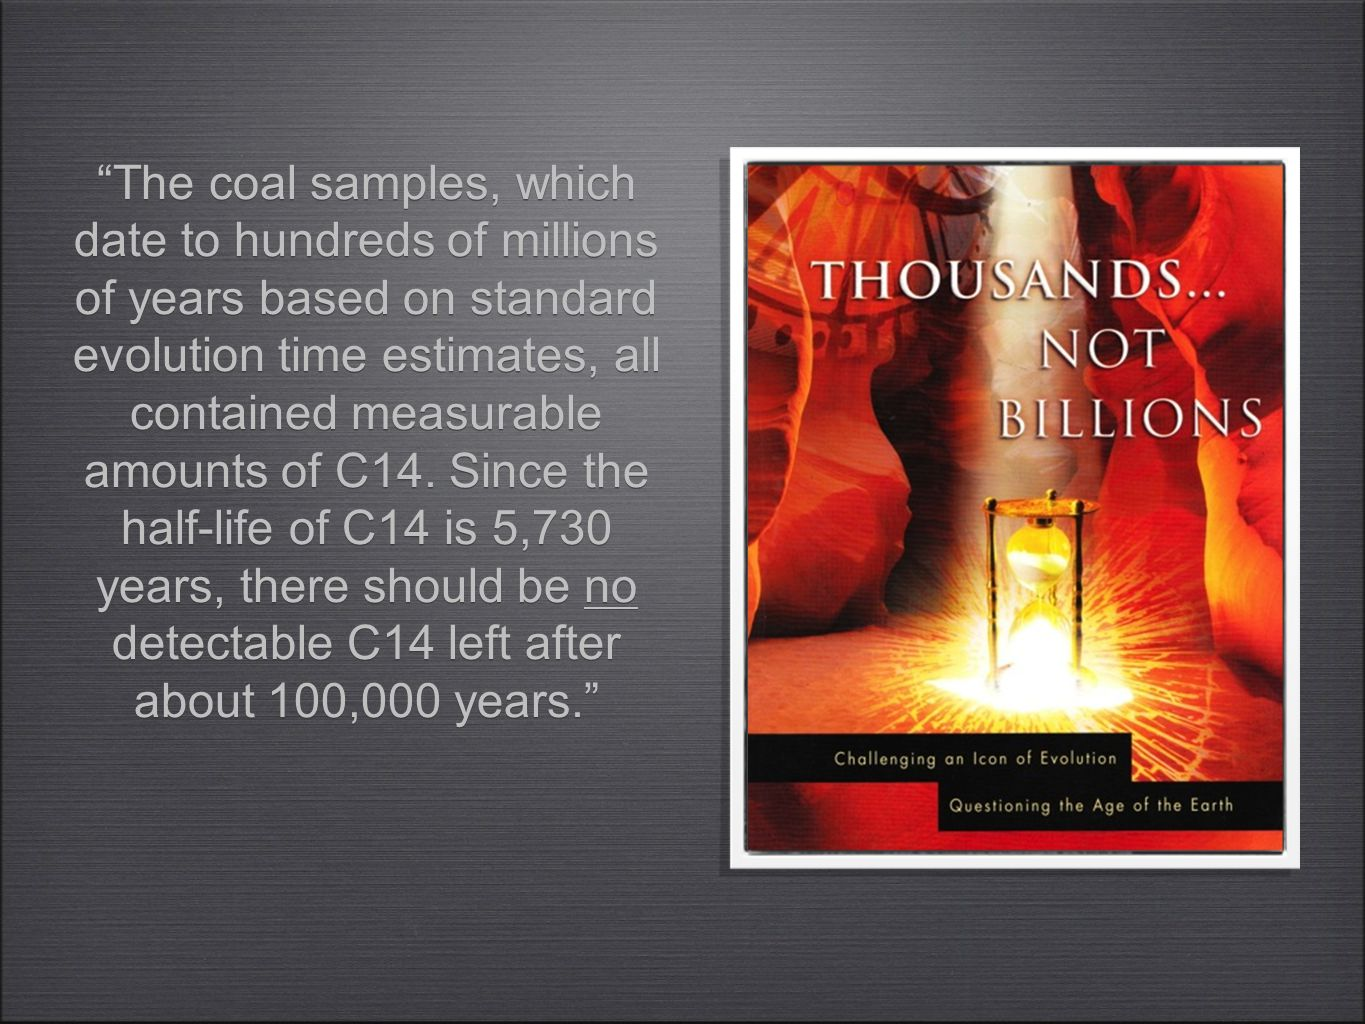 """The coal samples, which date to hundreds of millions of years based on standard evolution time estimates, all contained measurable amounts of C14. Si"